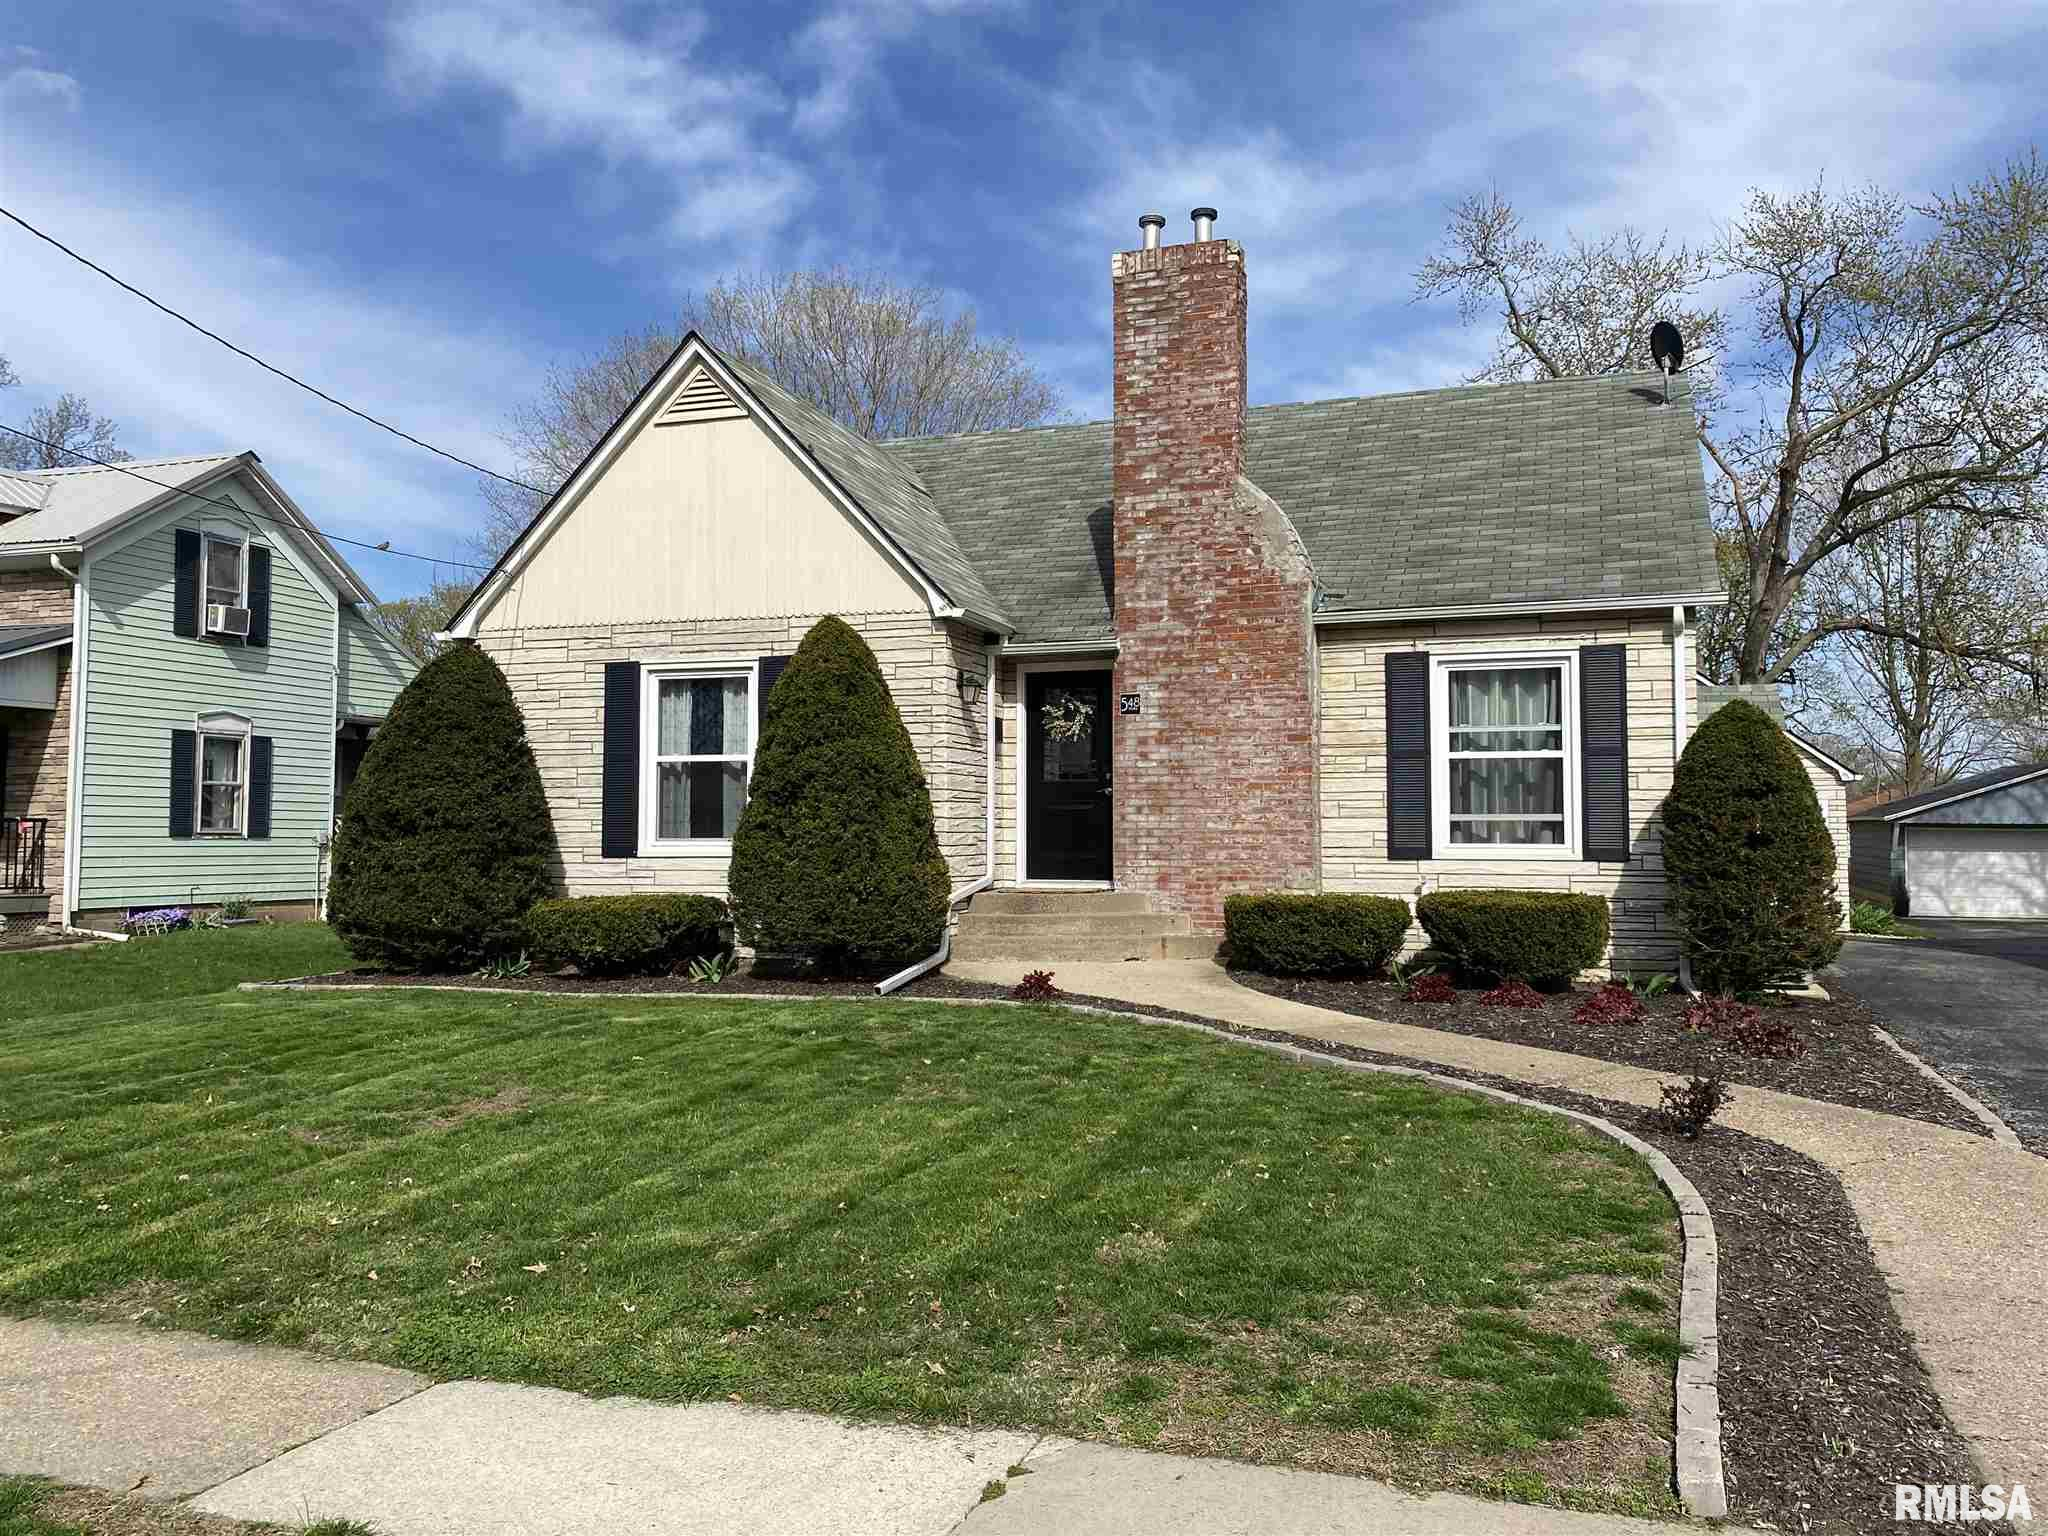 548 N STATE Property Photo - Geneseo, IL real estate listing